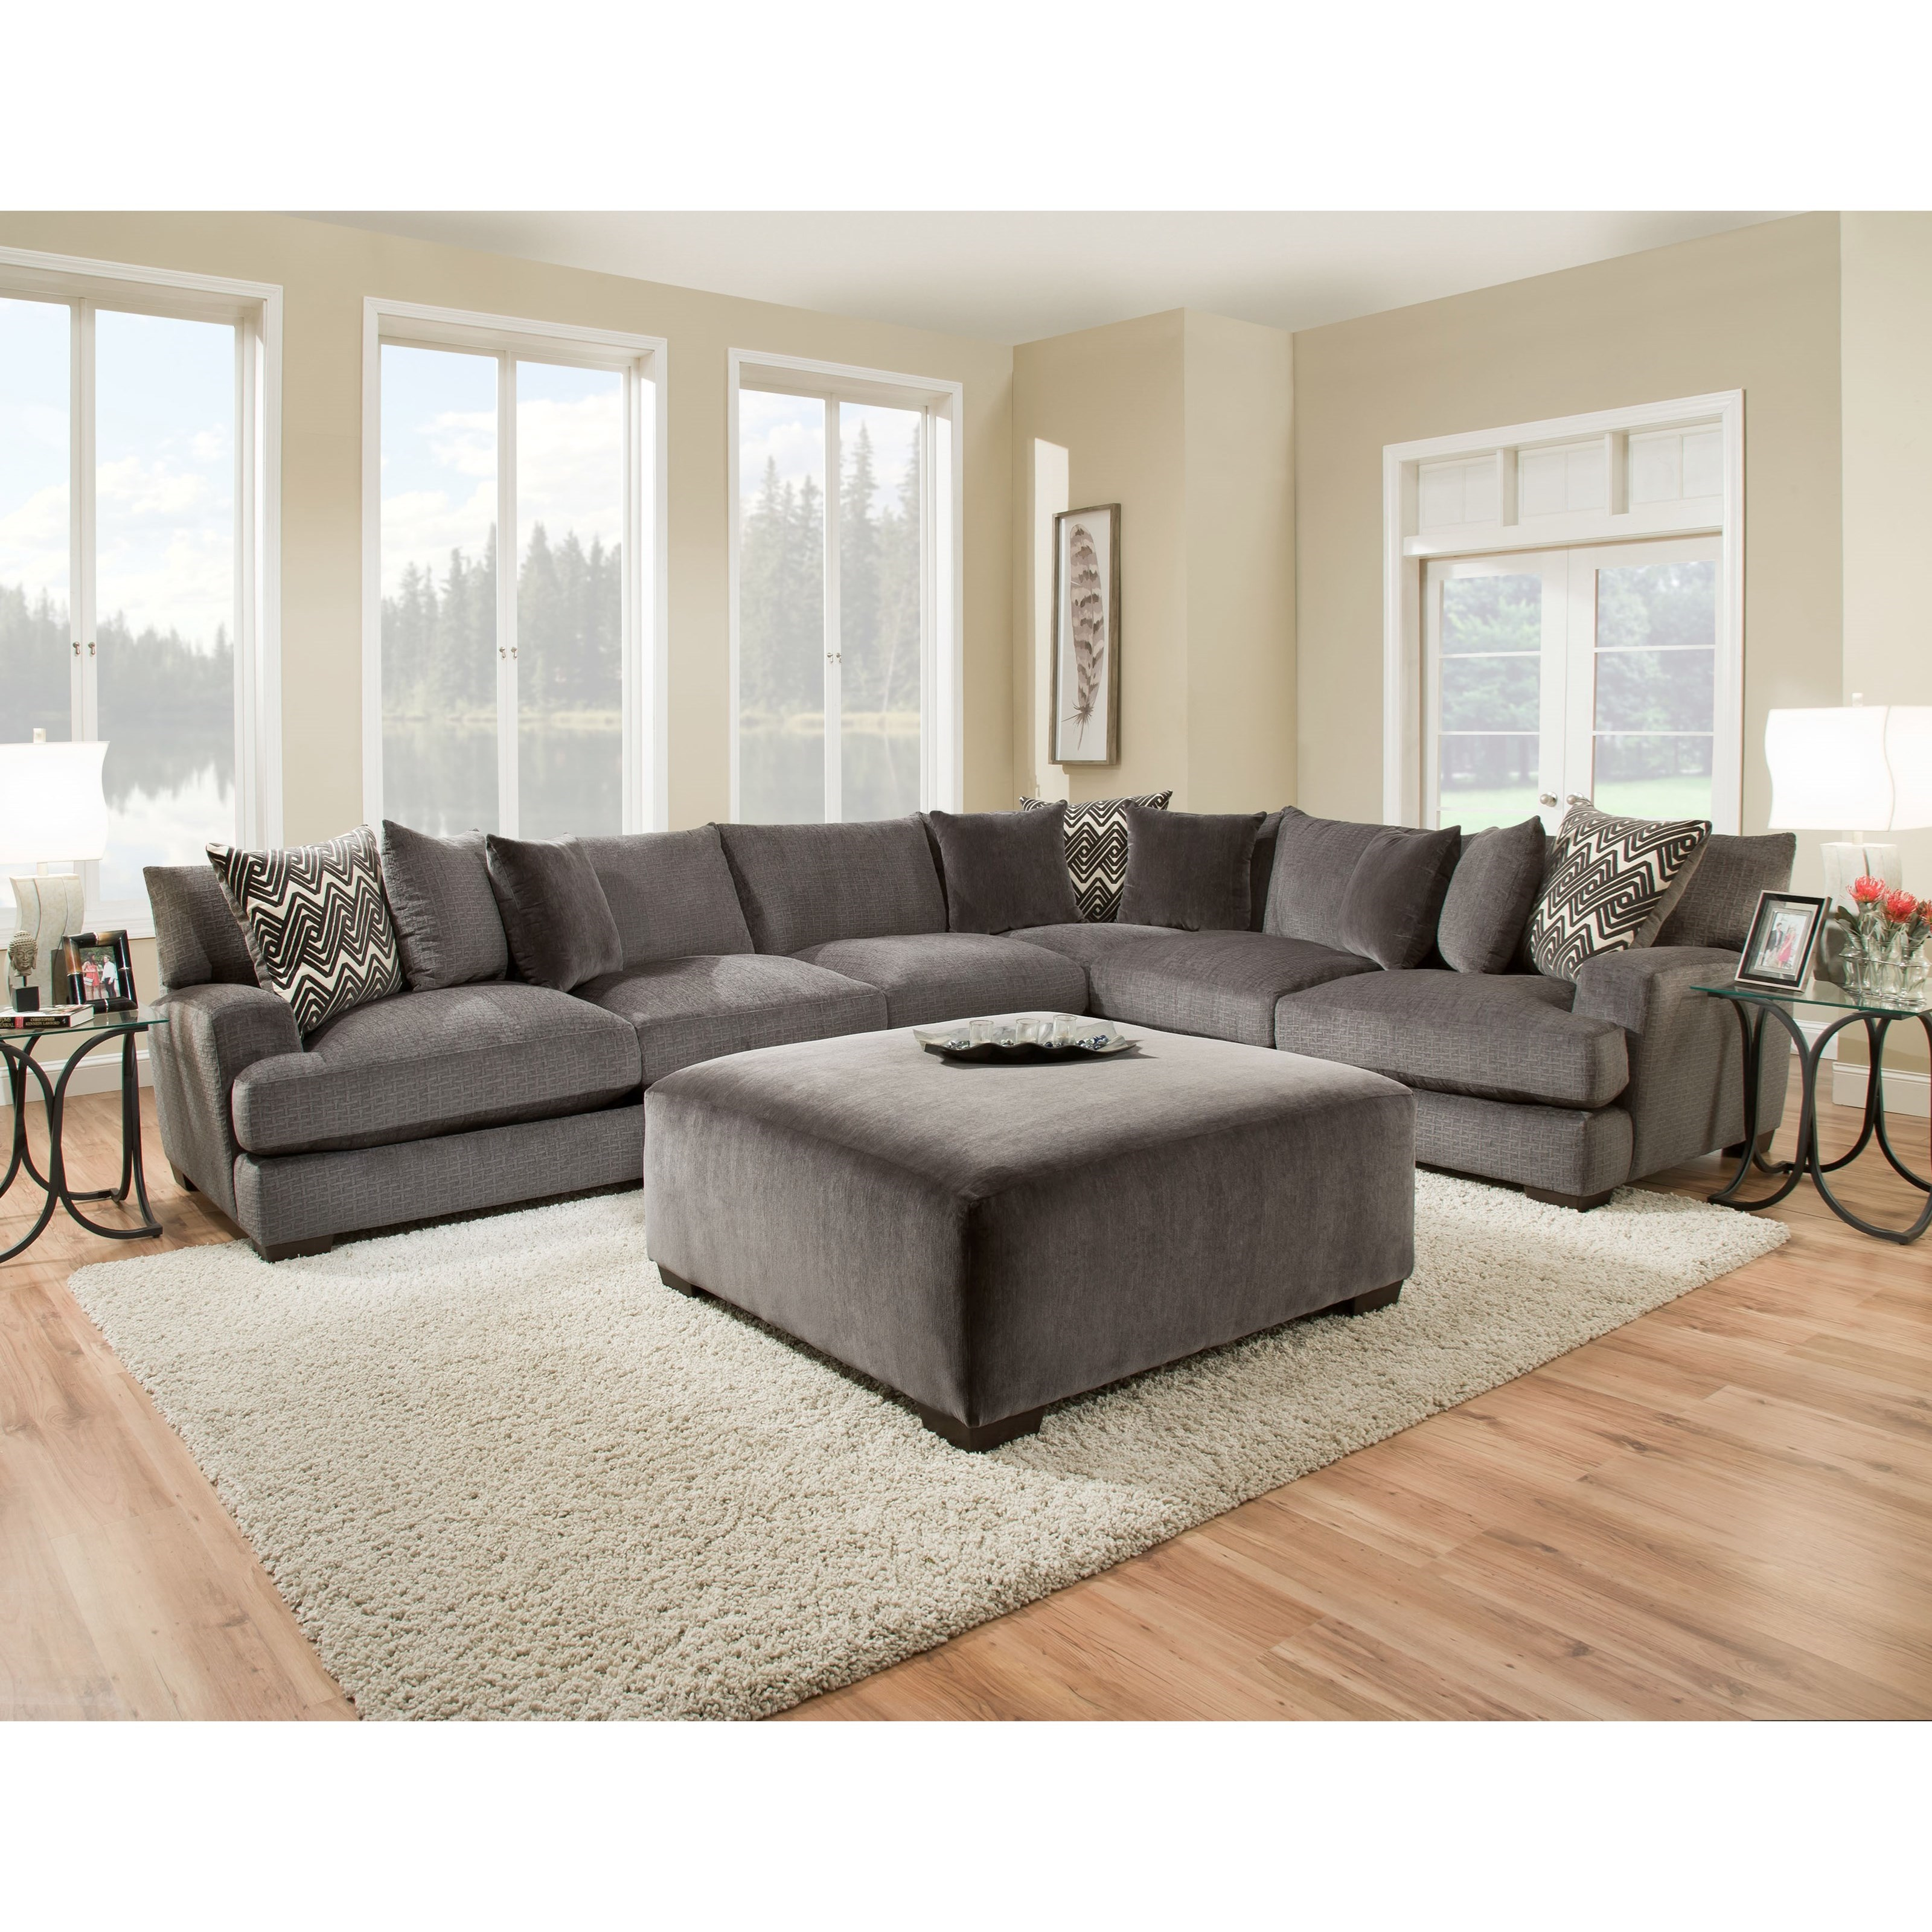 American Furniture 1600 Living Room Group - Item Number: 1600 Living Room Group 2-Smoke